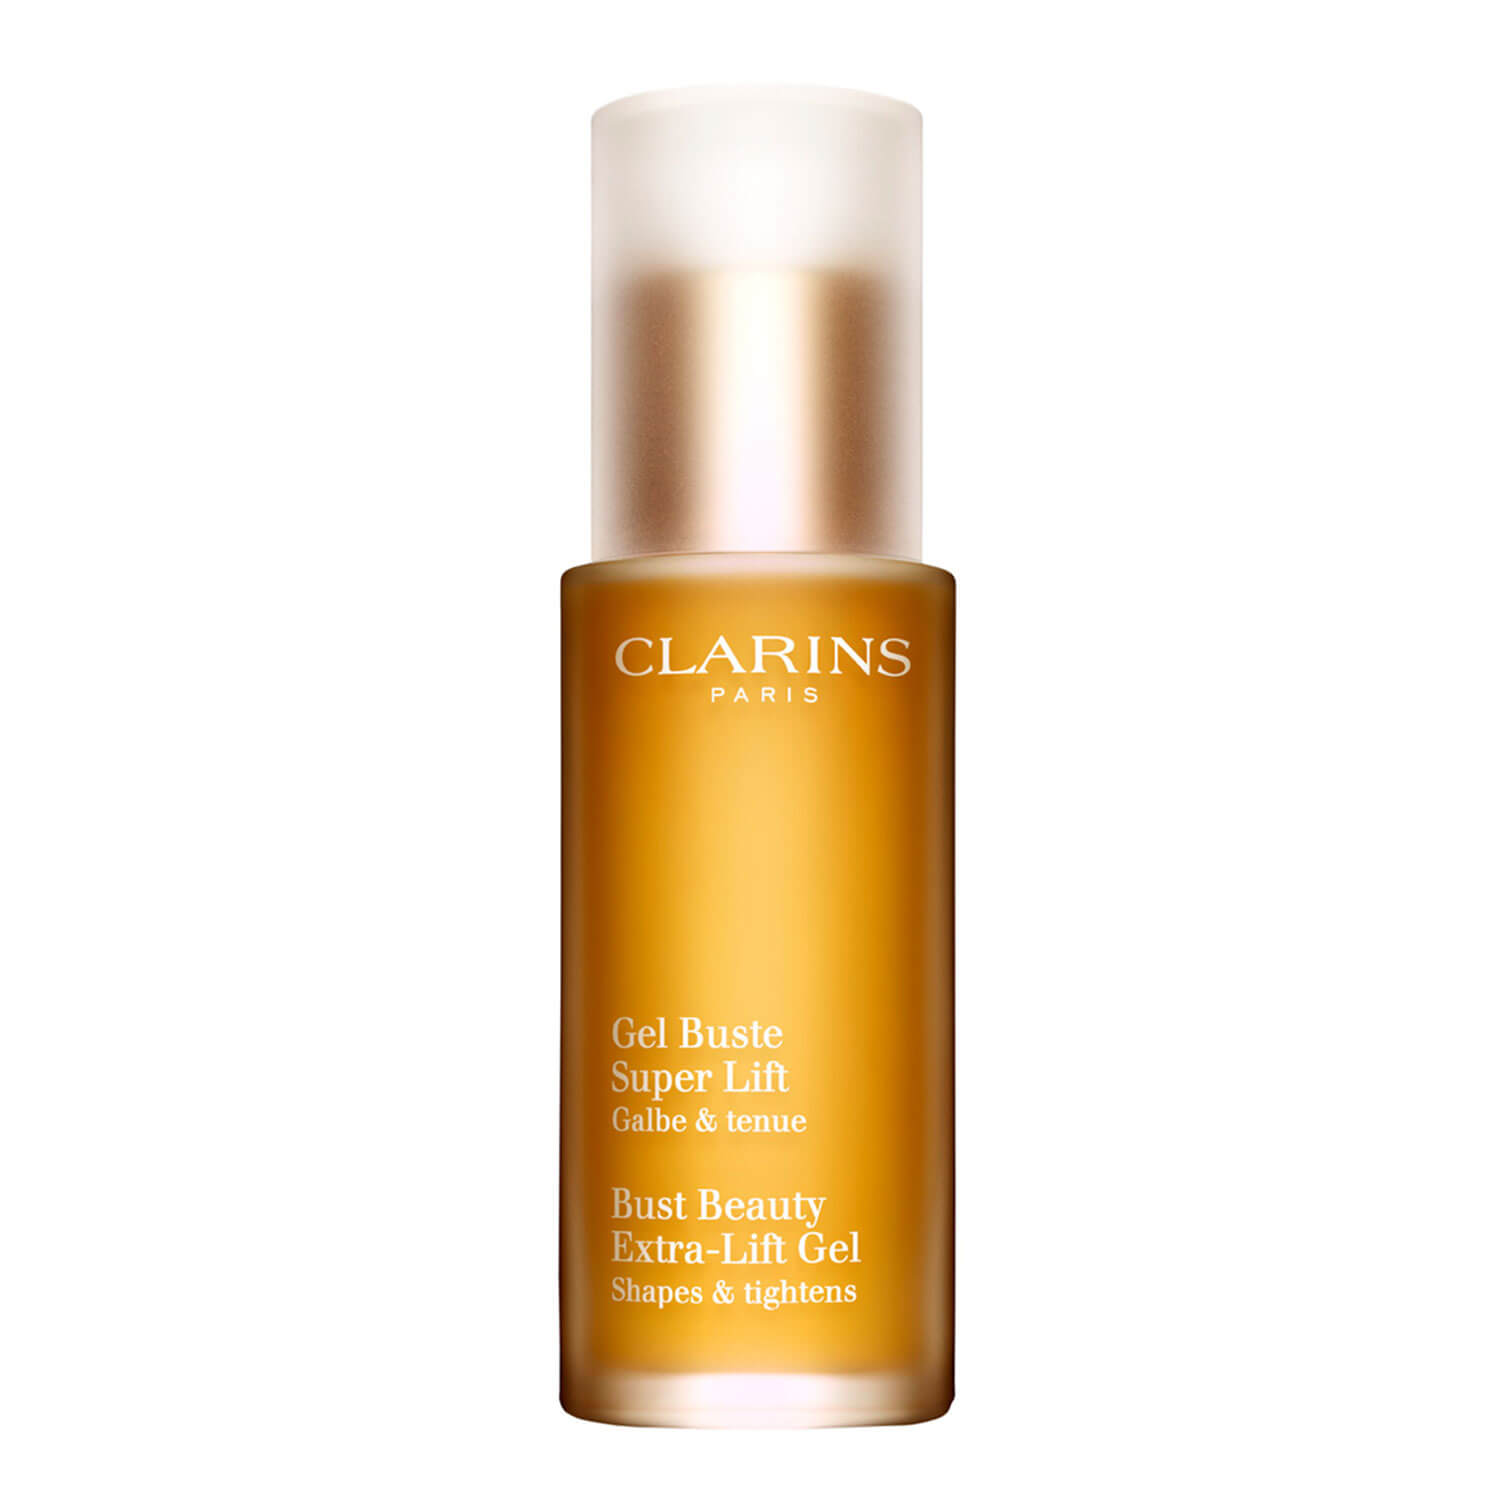 Clarins Body - Bust Beauty Extra-Lift Gel